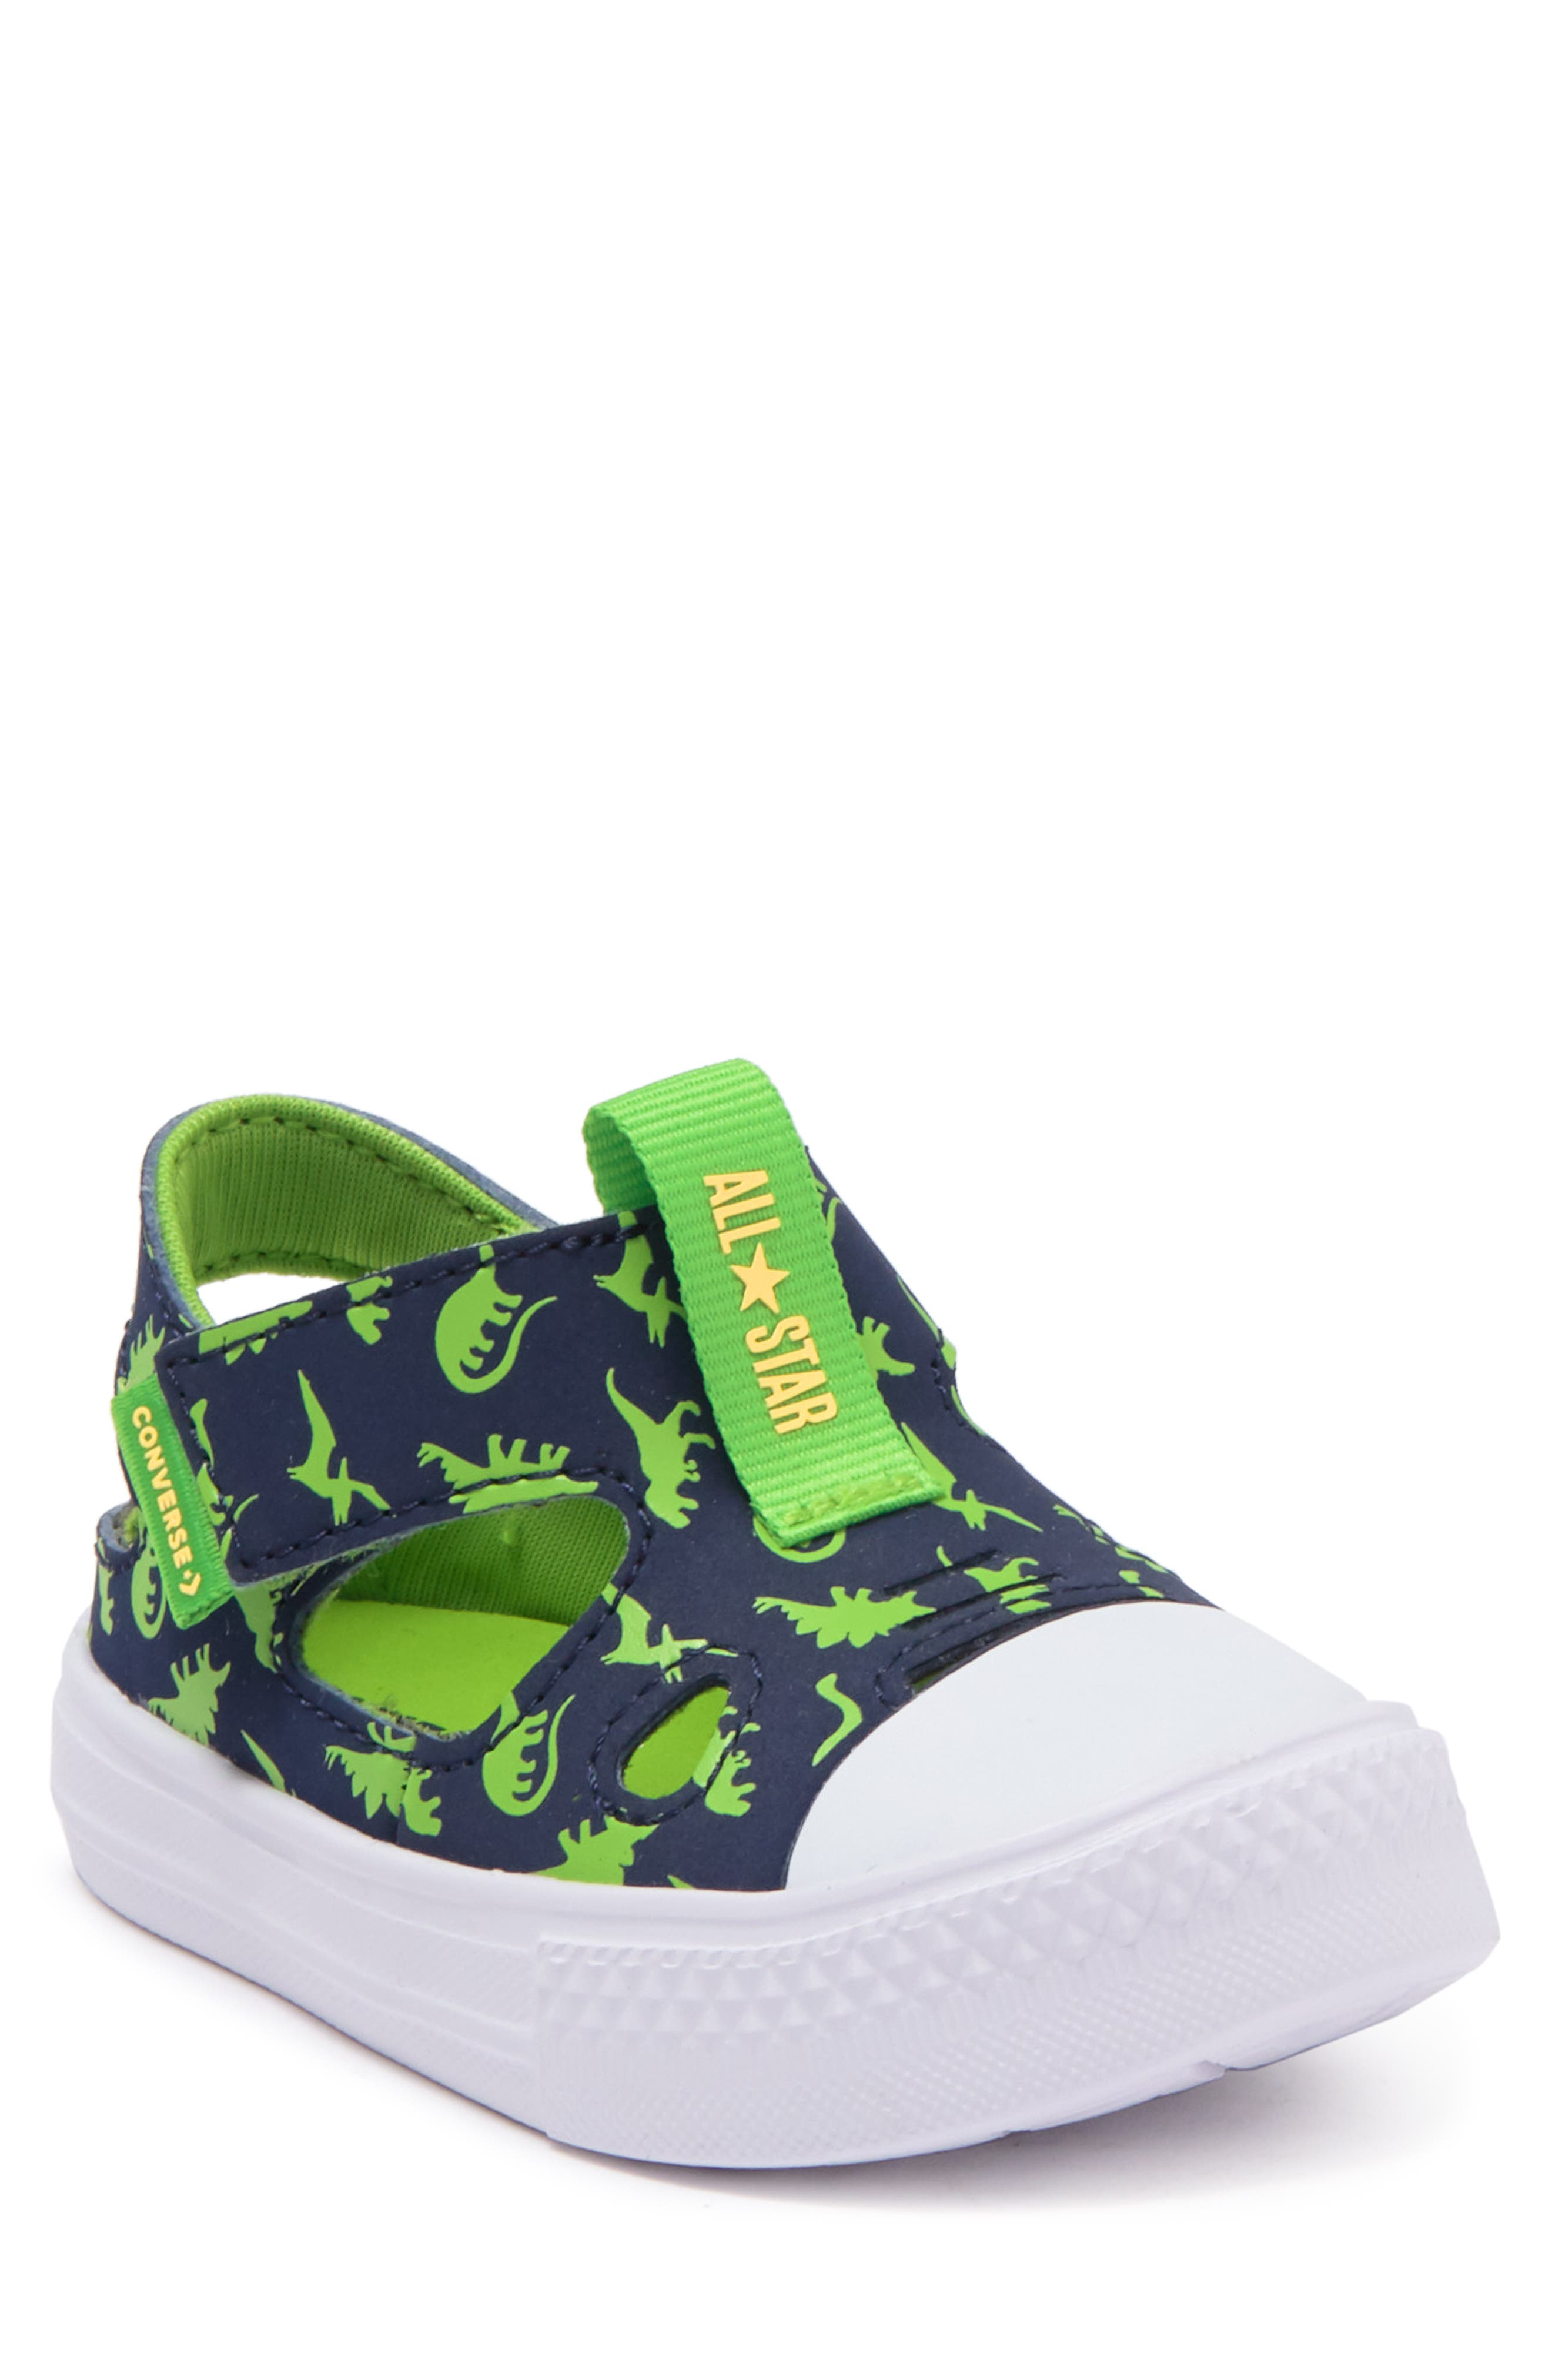 Converse Kids' Chuck Taylor All Star Superplay Oxford Sandal In Midnight Navy/b